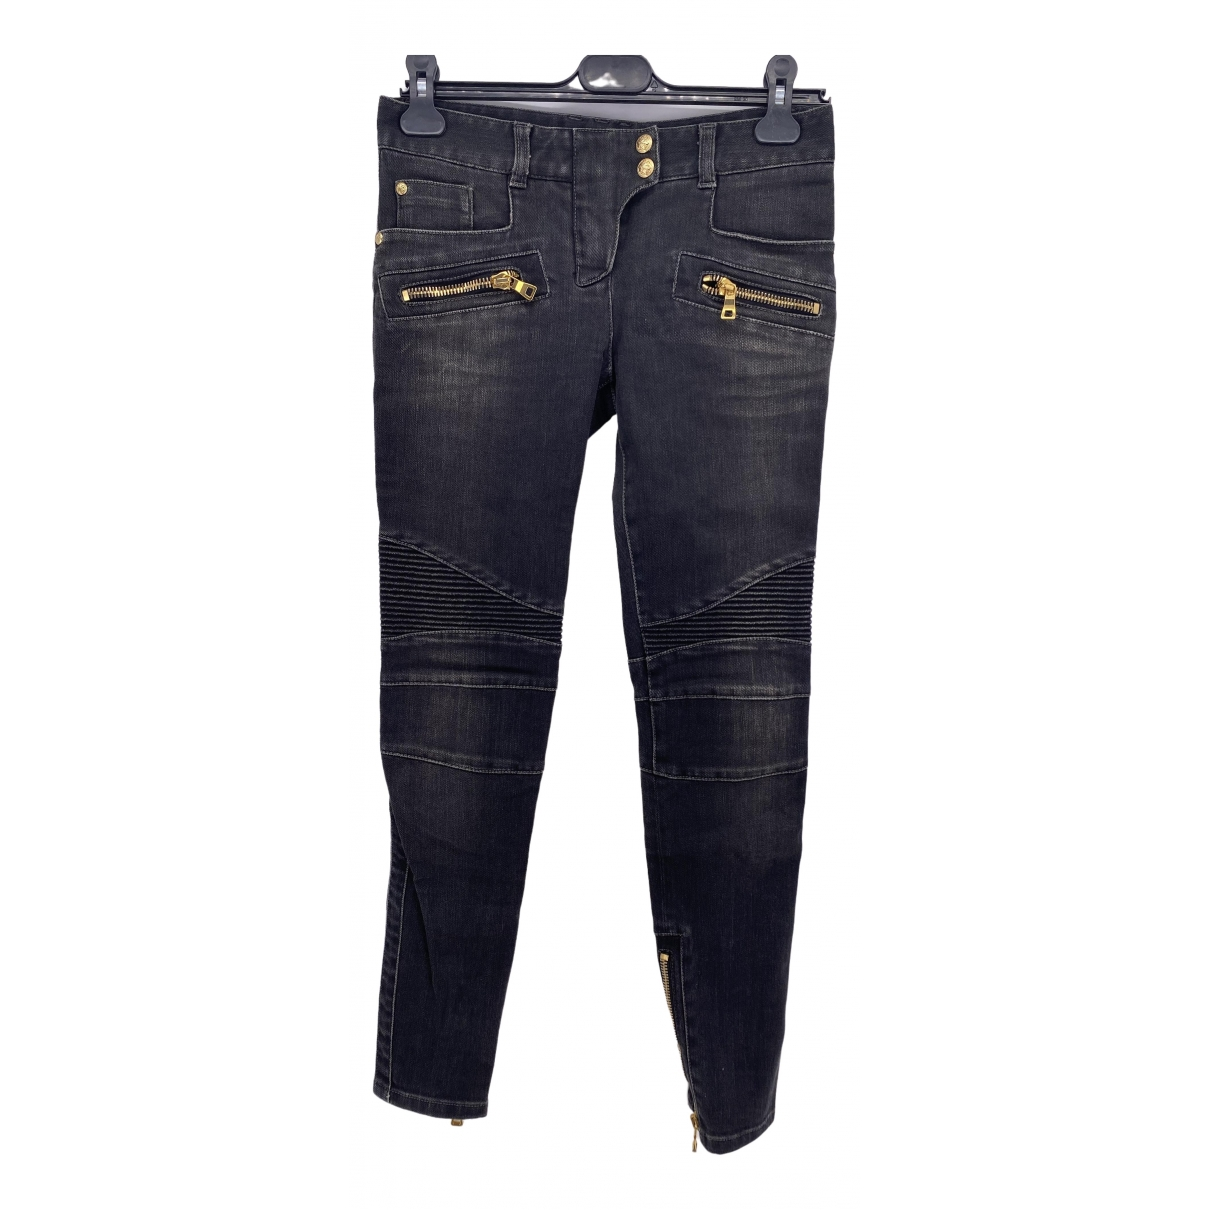 Balmain \N Black Cotton Jeans for Women 25 US